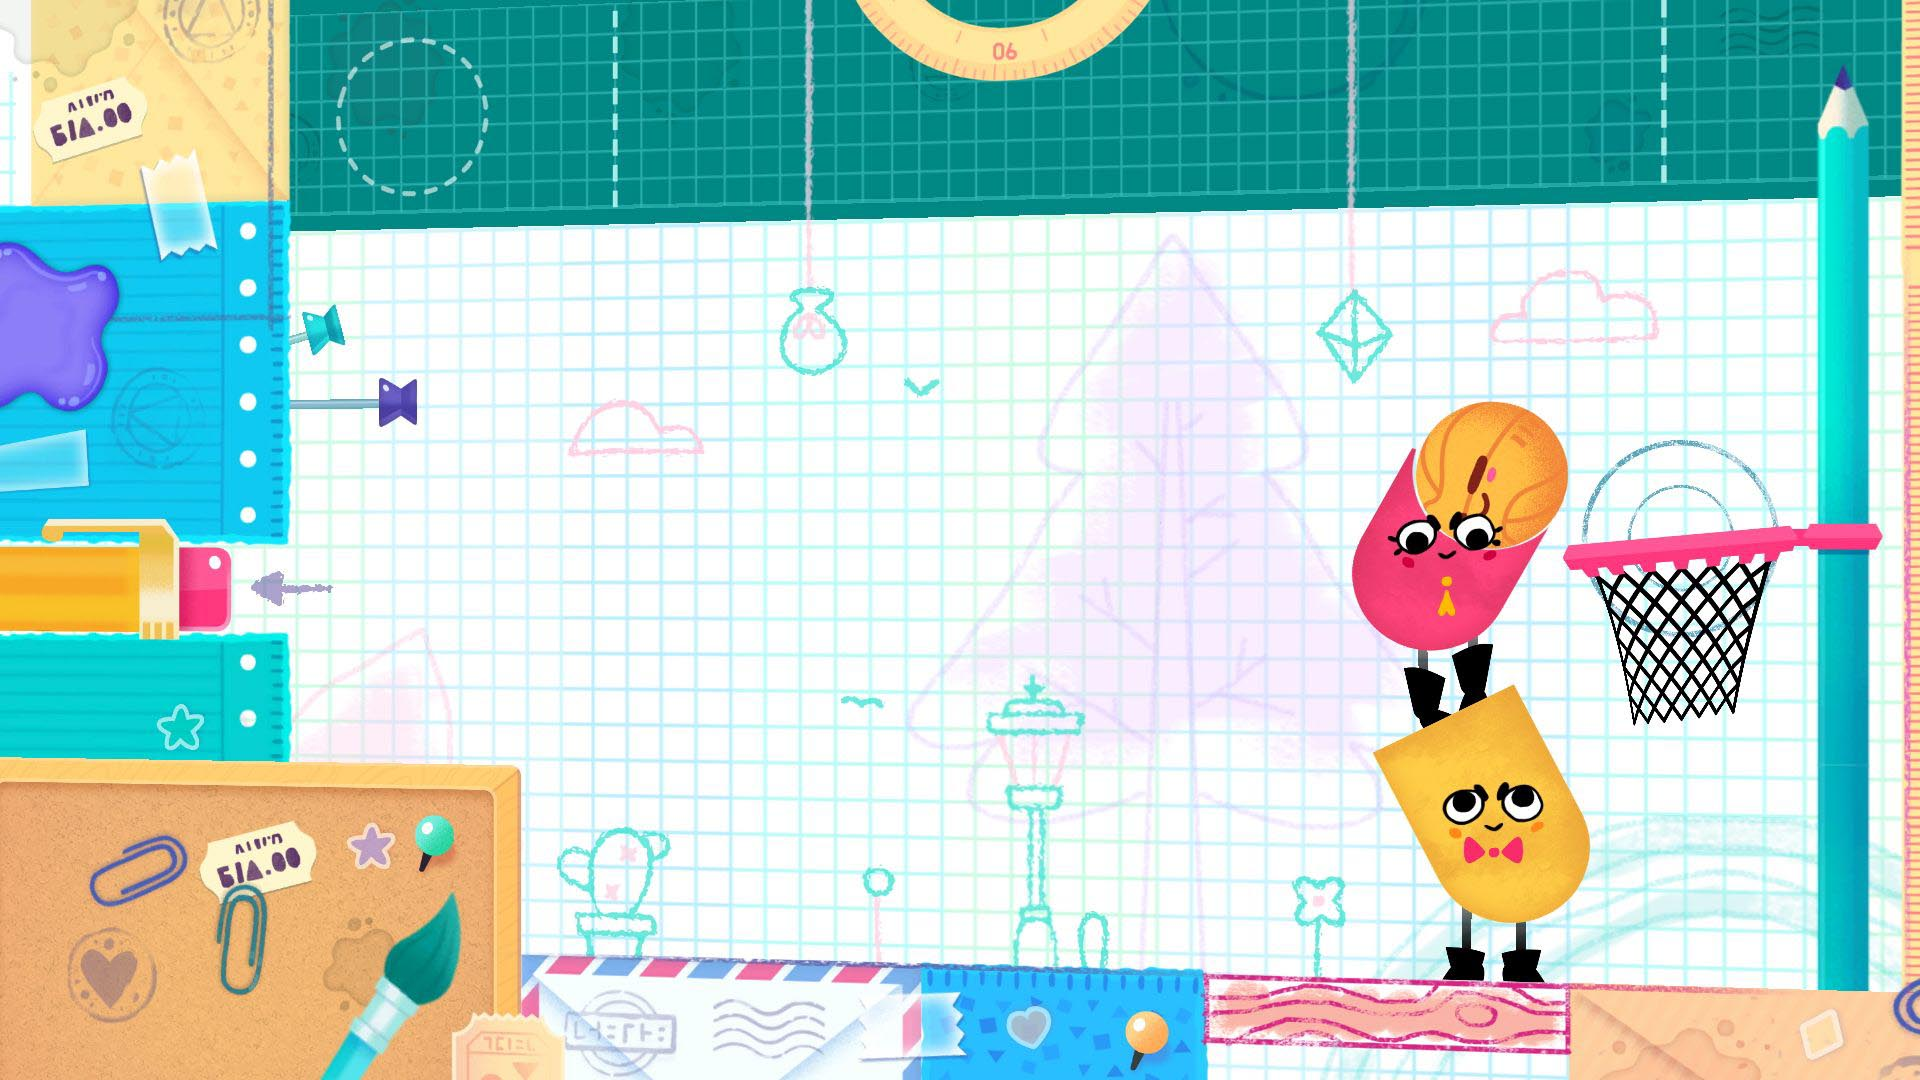 2_NintendoSwitch_Snipperclips_Screenshots_Snippers_Presentation2017_scrn02_v1